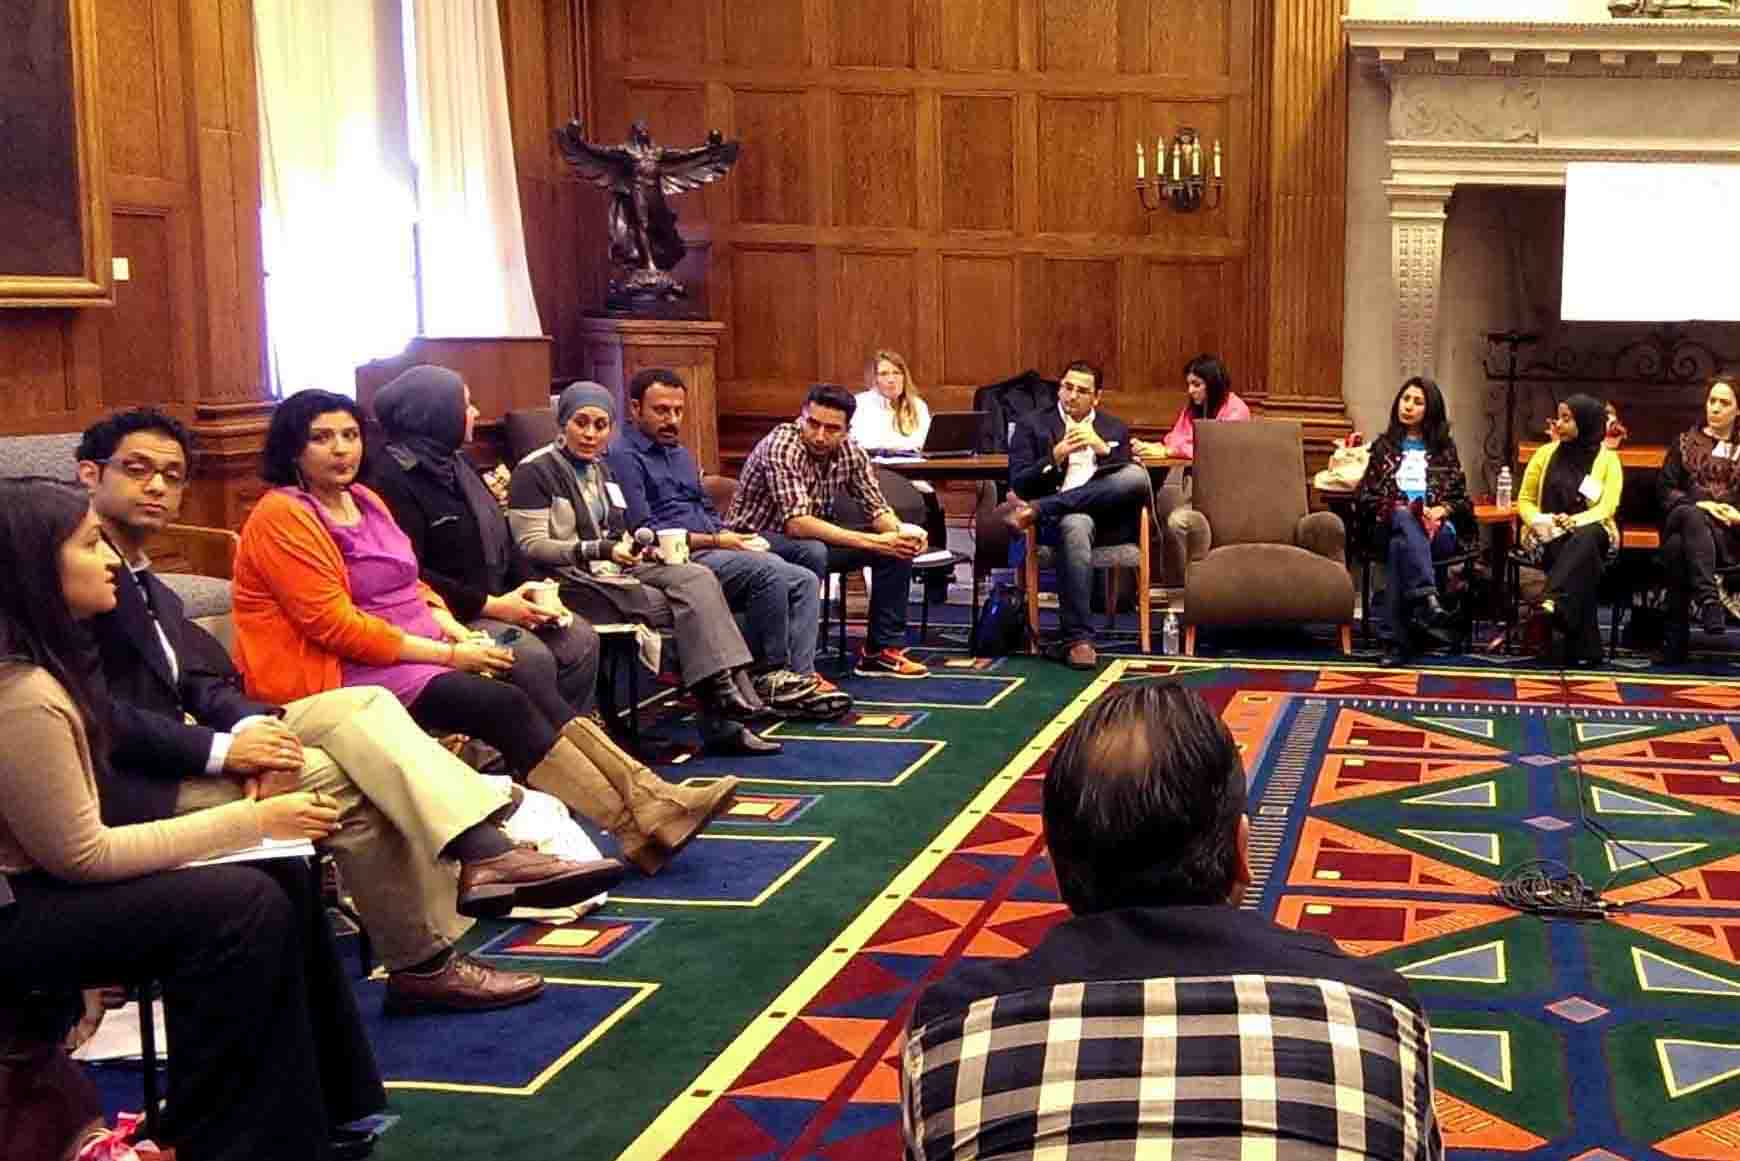 Workshop attendees sitting in a circle at Harvard University